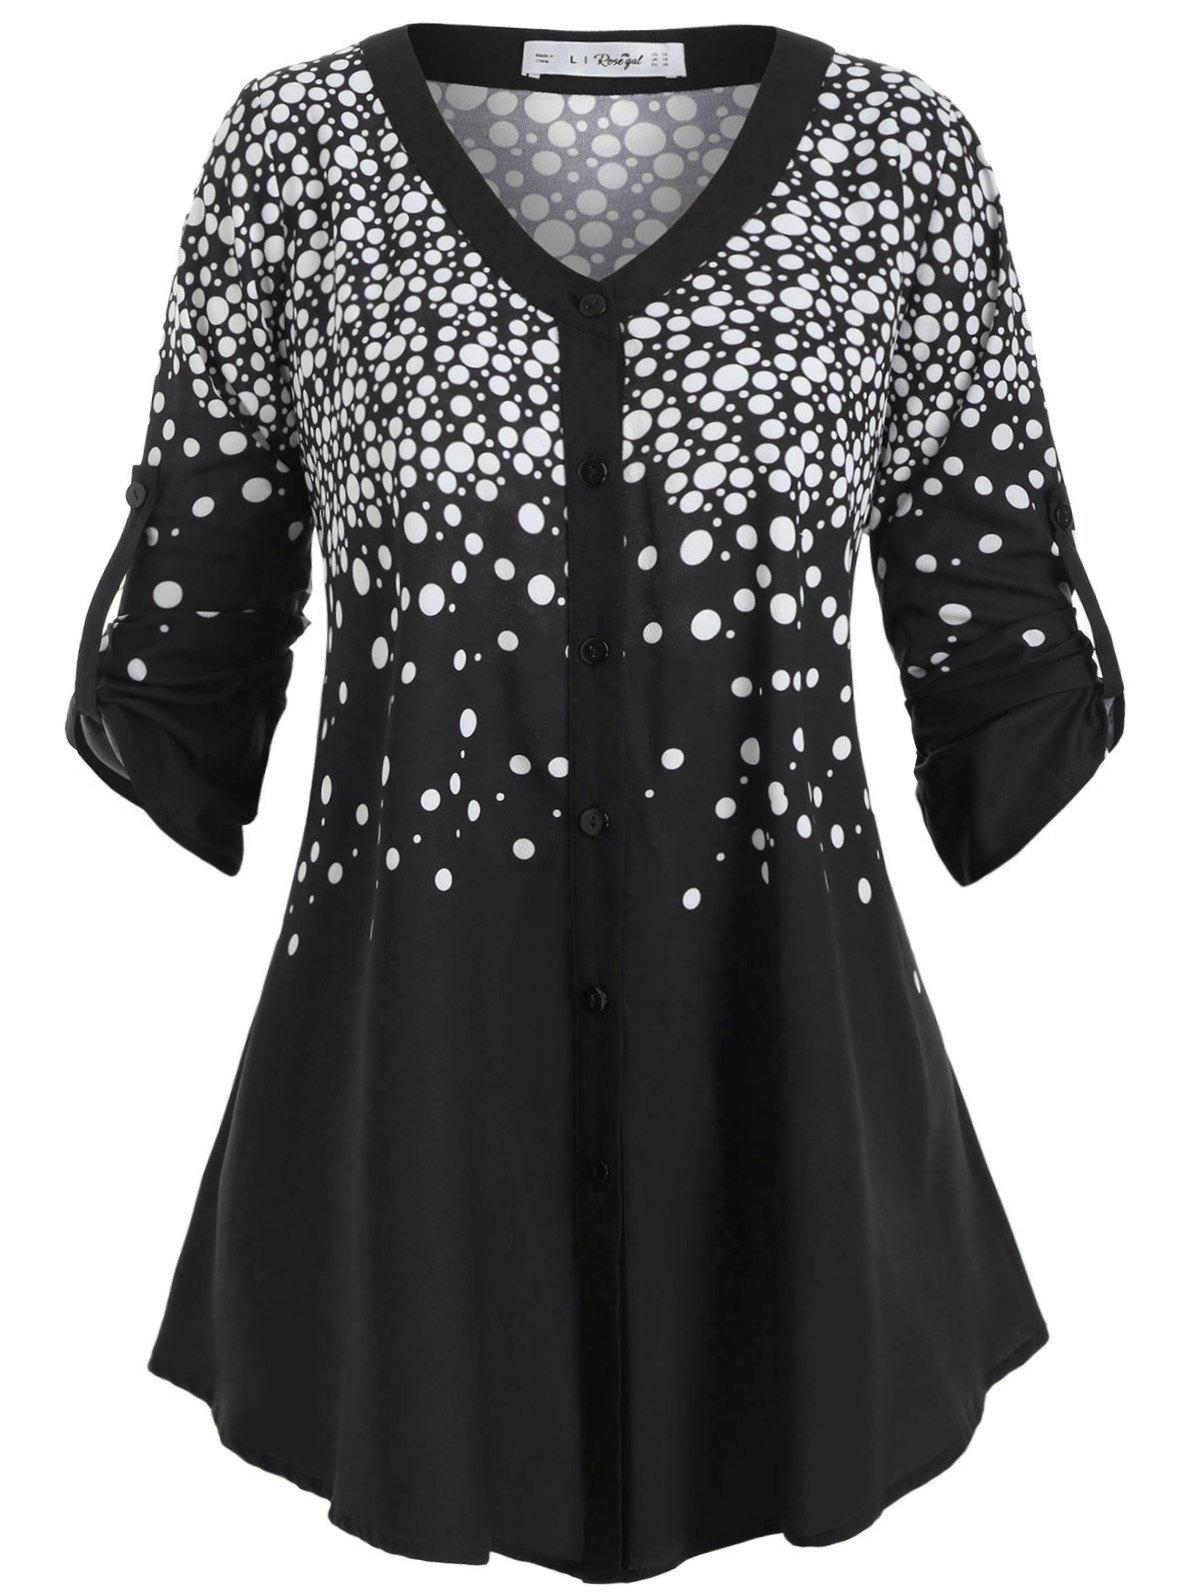 Latest Buttoned Tabs Button Up Polka Dot Plus Size Top